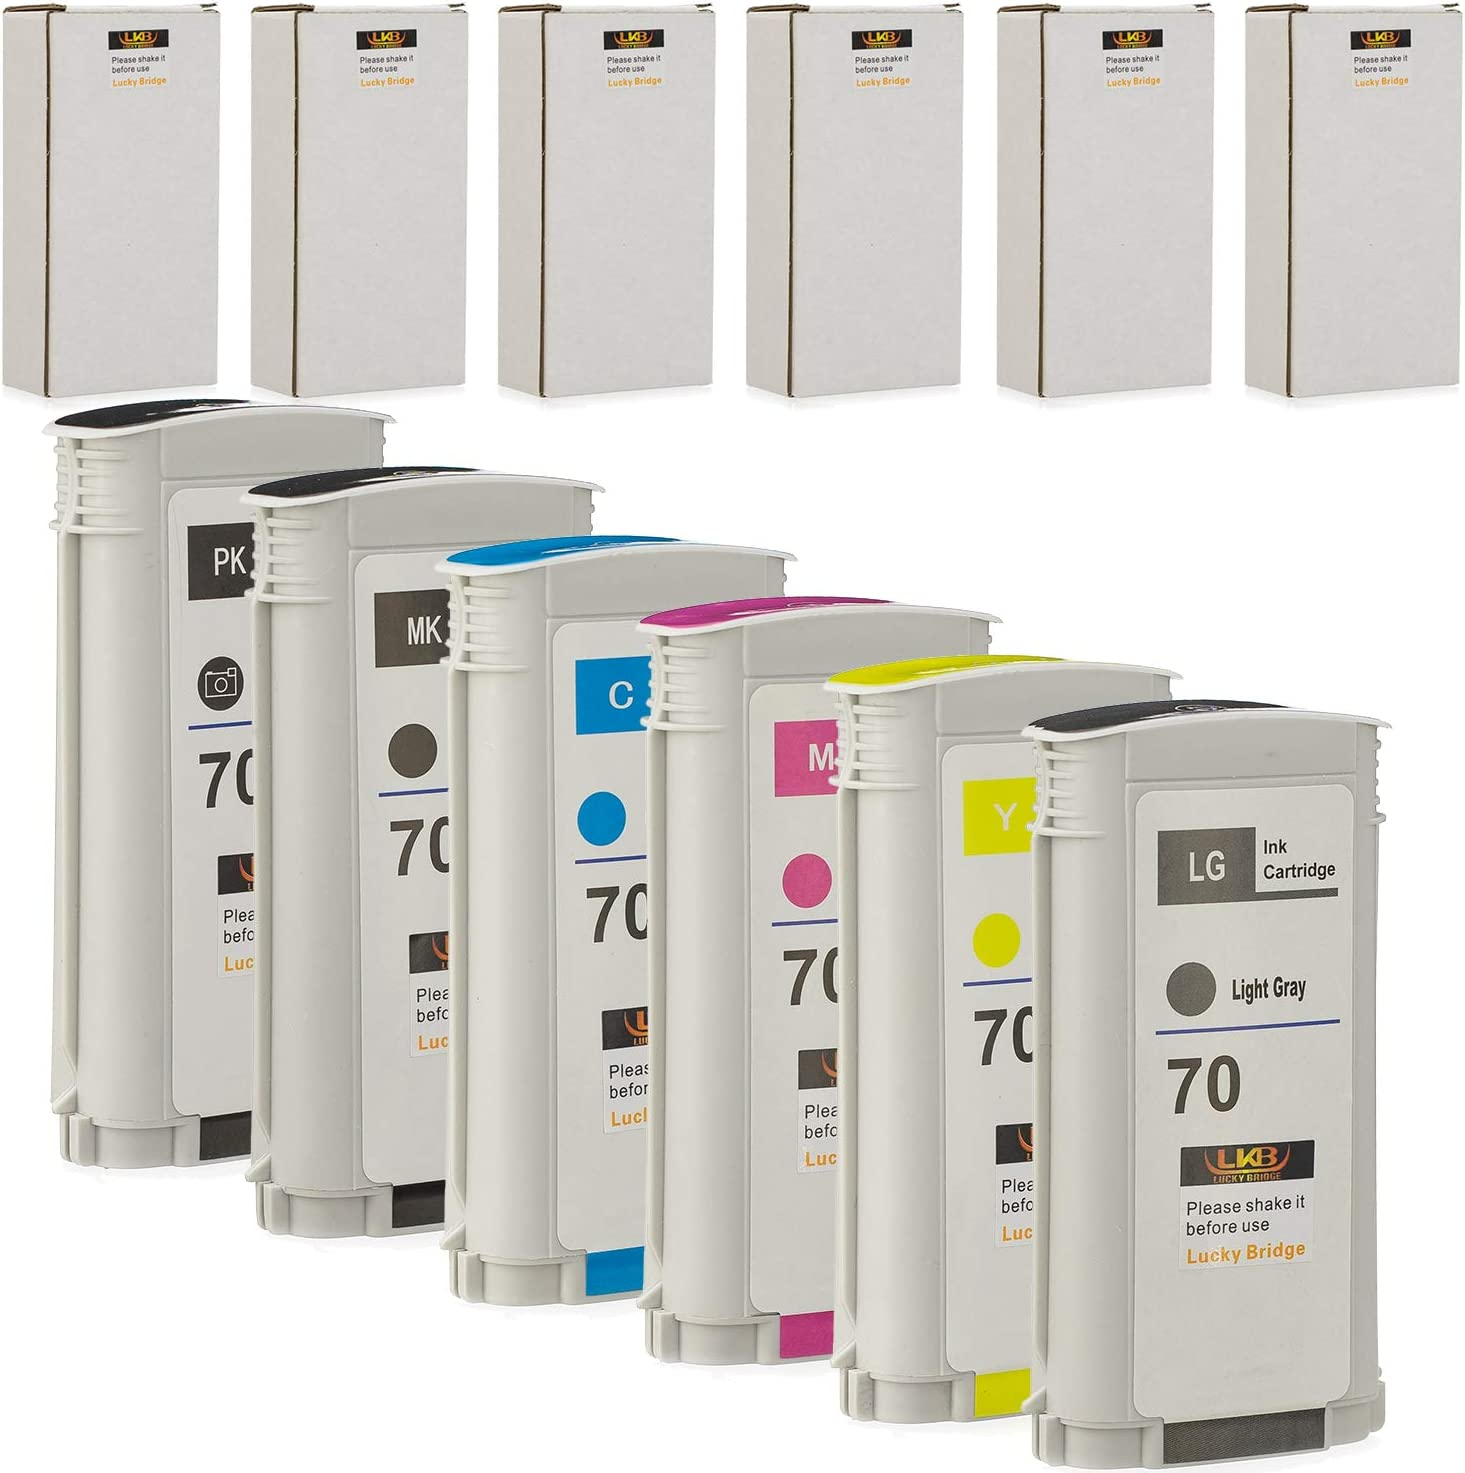 LKB 6PK Compatible HP70 Ink Cartridge Replacement with 130ML Use with HP Designjet Z2100 Z5200 Z3200 Z3100 Z5400 (6 Pack HP70) –US